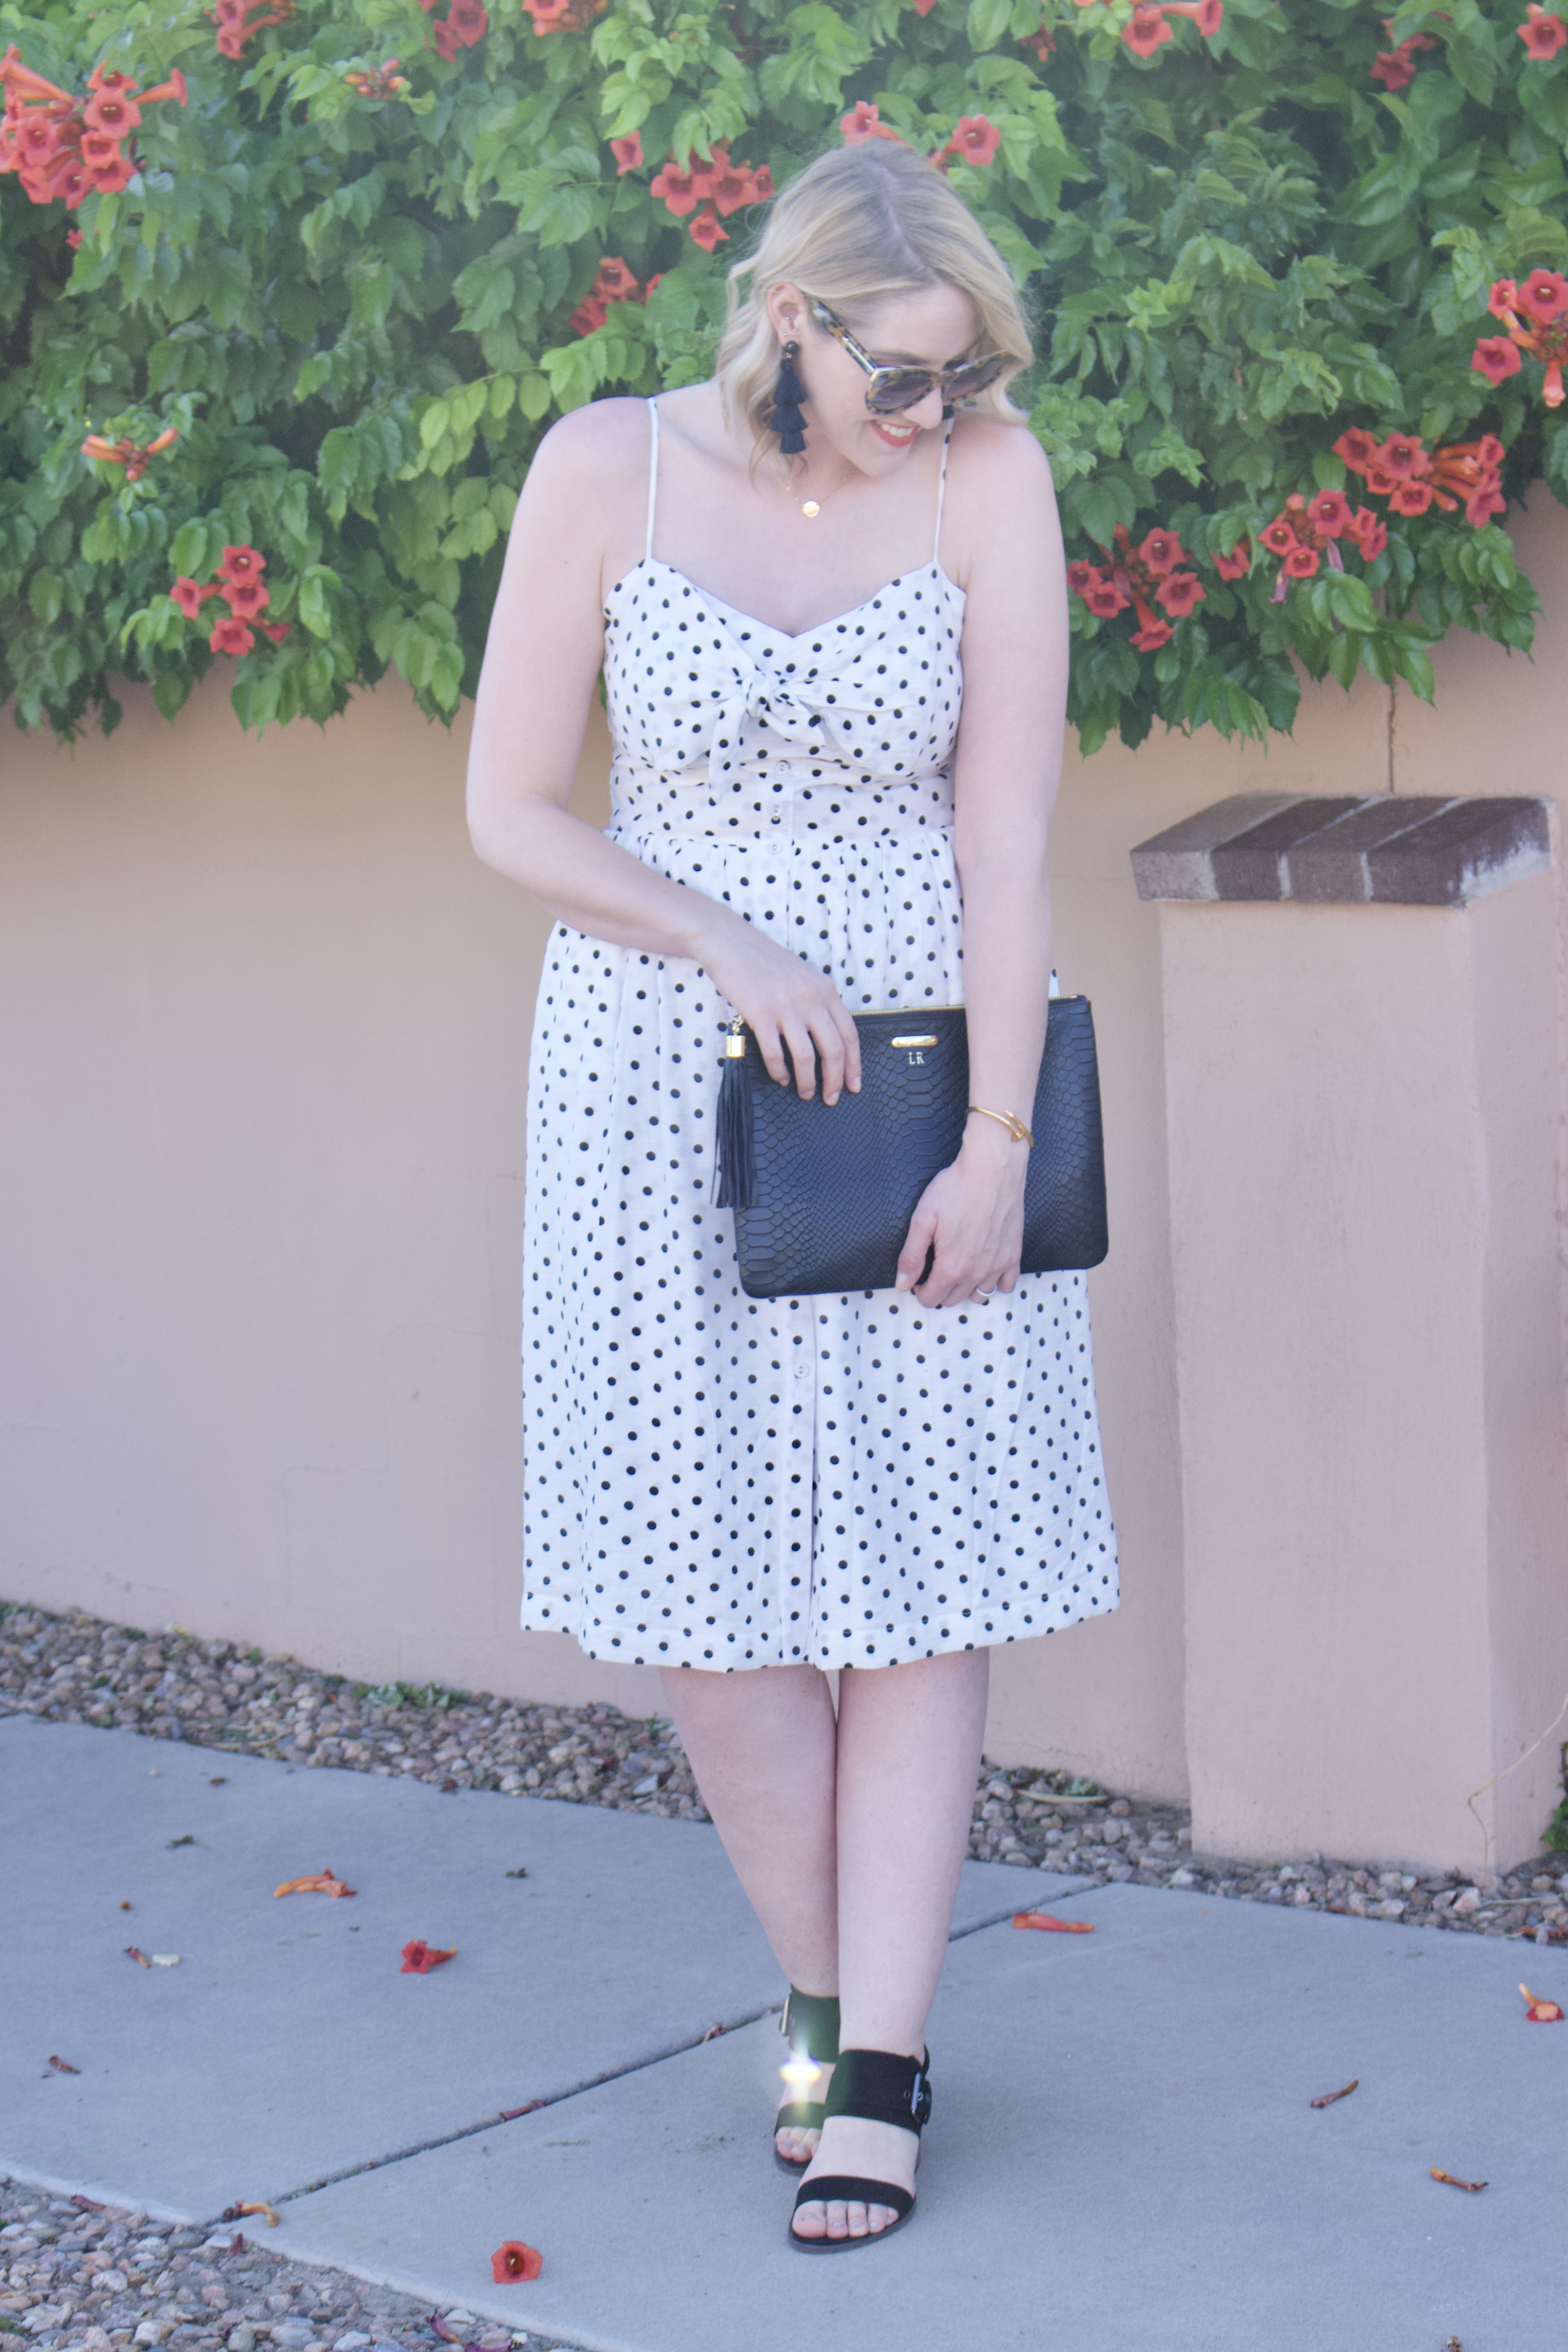 cute midi dress for summer #summer #polkadotdress #momstyle #fashionblogger